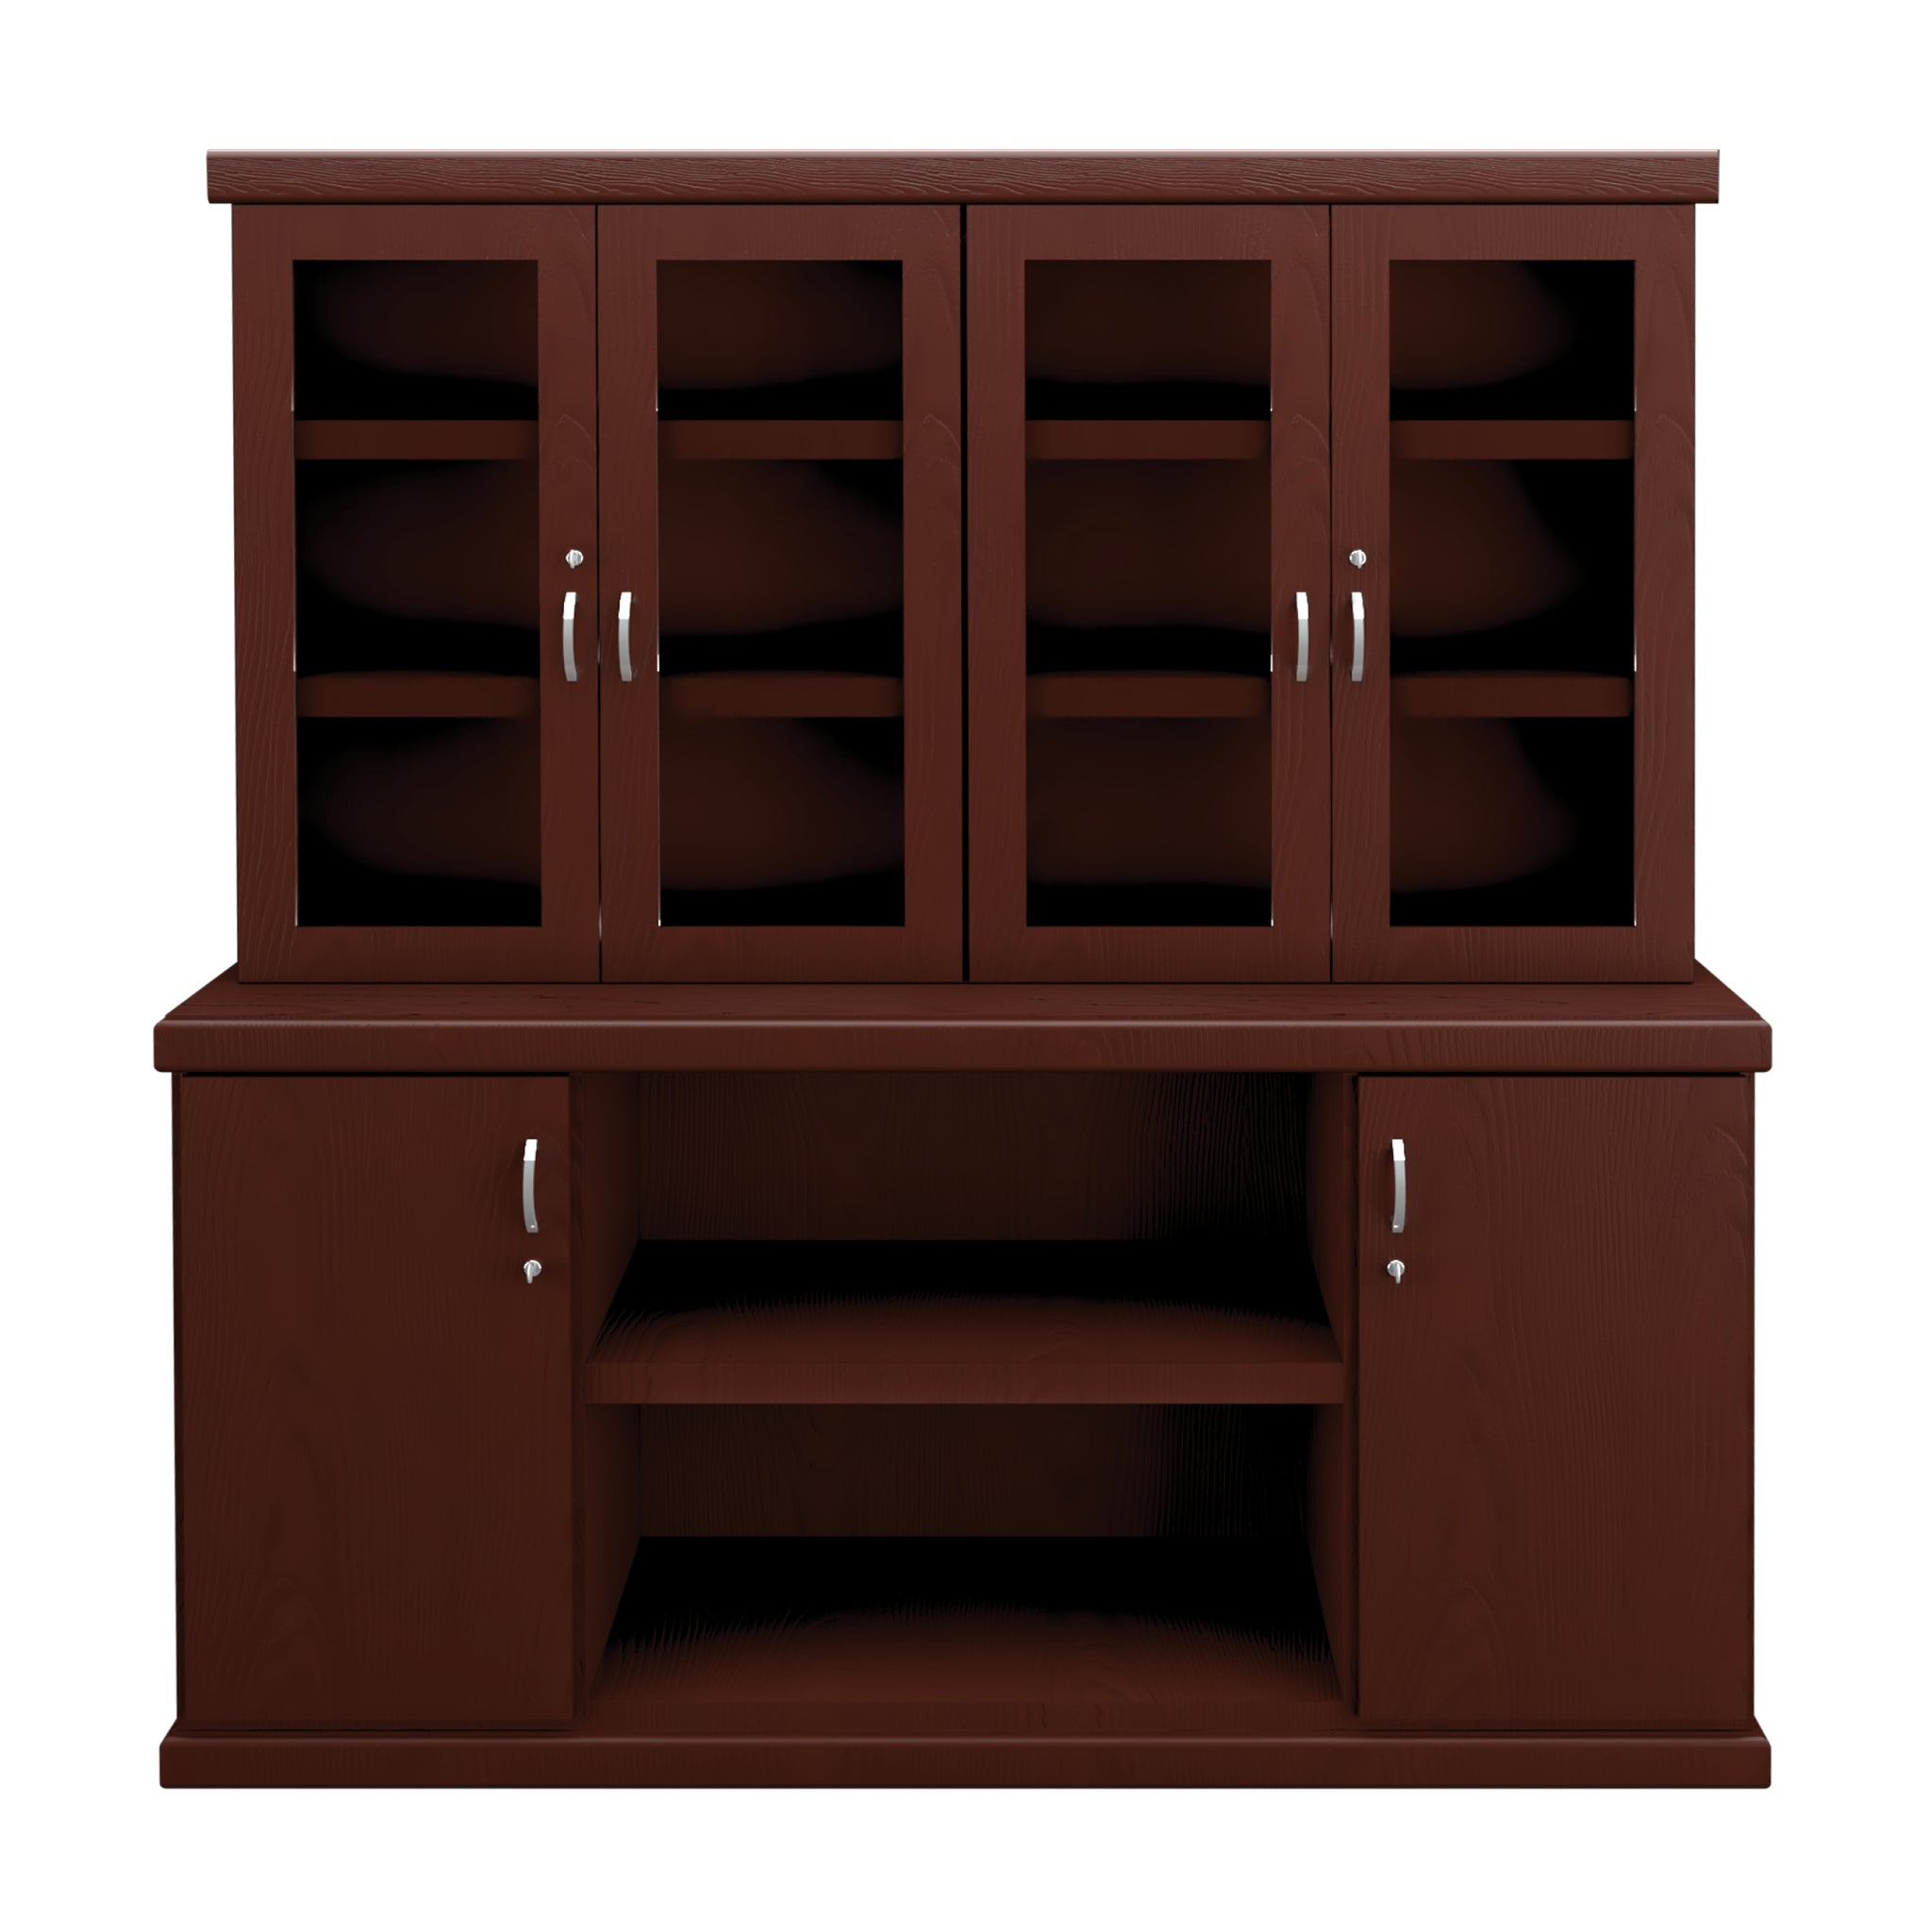 Hedcor Tanzanite wall unit